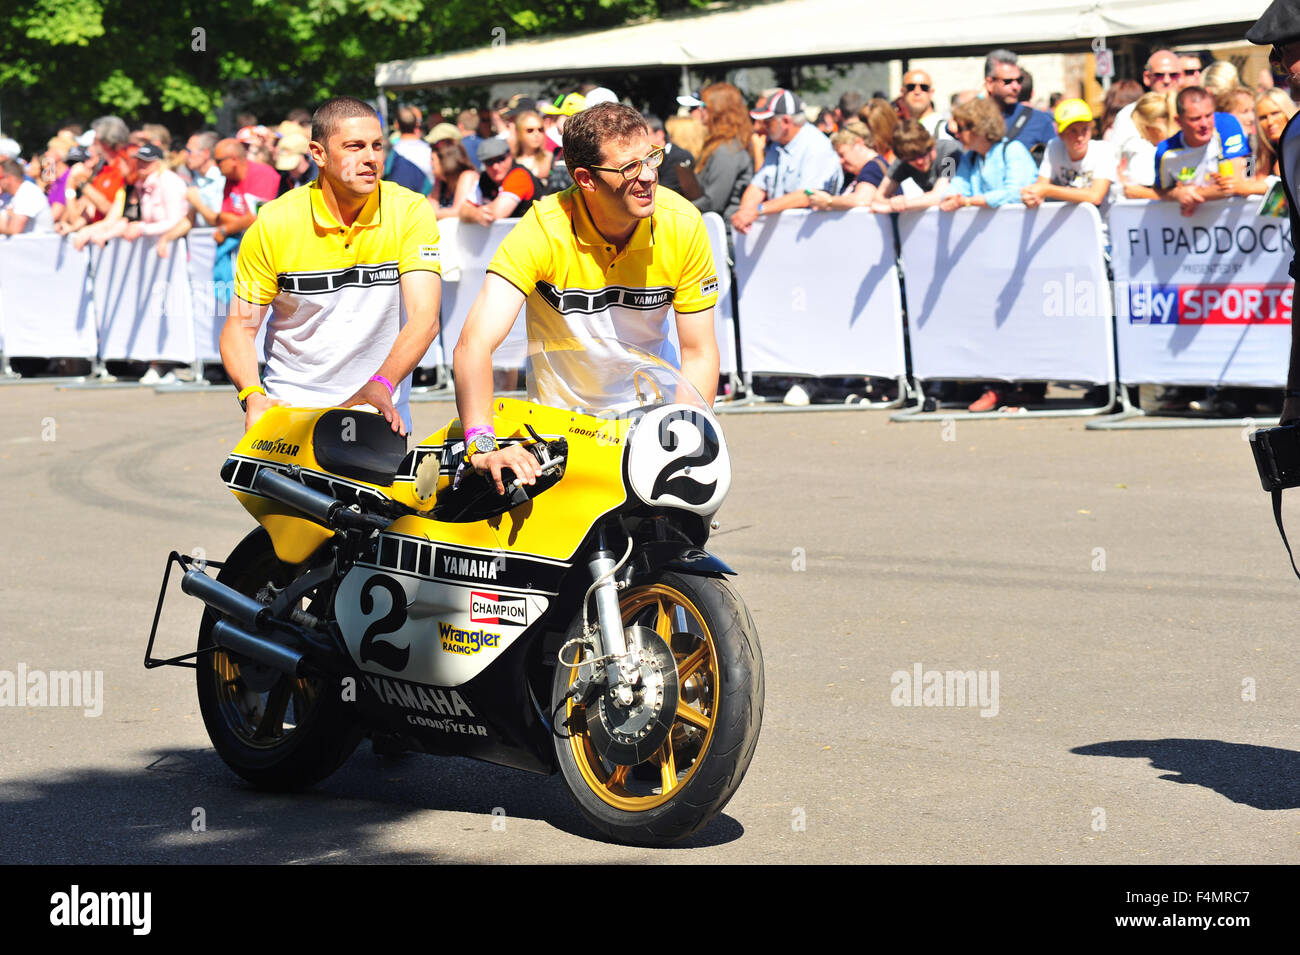 Yamaha technicians push a Yamaha YZR750 OW31 racing bike into the paddock at the Goodwood Festival of Speed in the - Stock Image